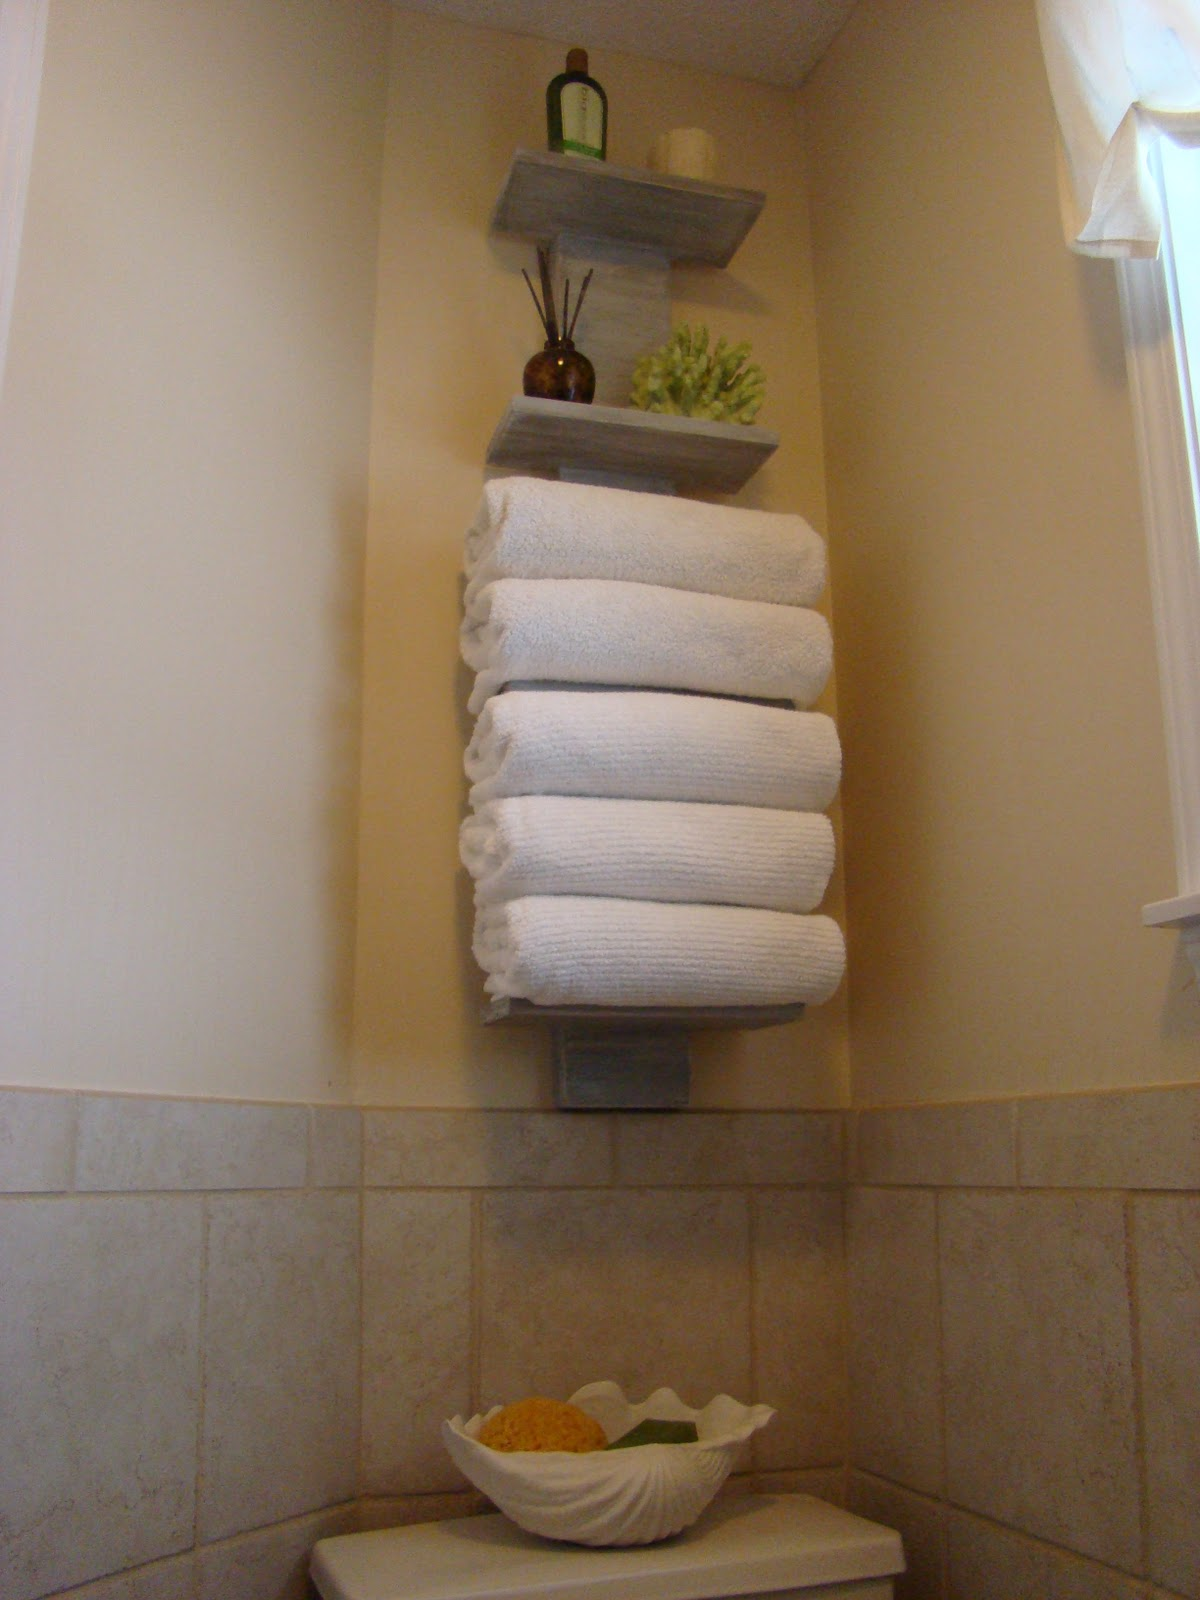 Bathroom Towel Storage Ideas : My bath finally gets some towel storage